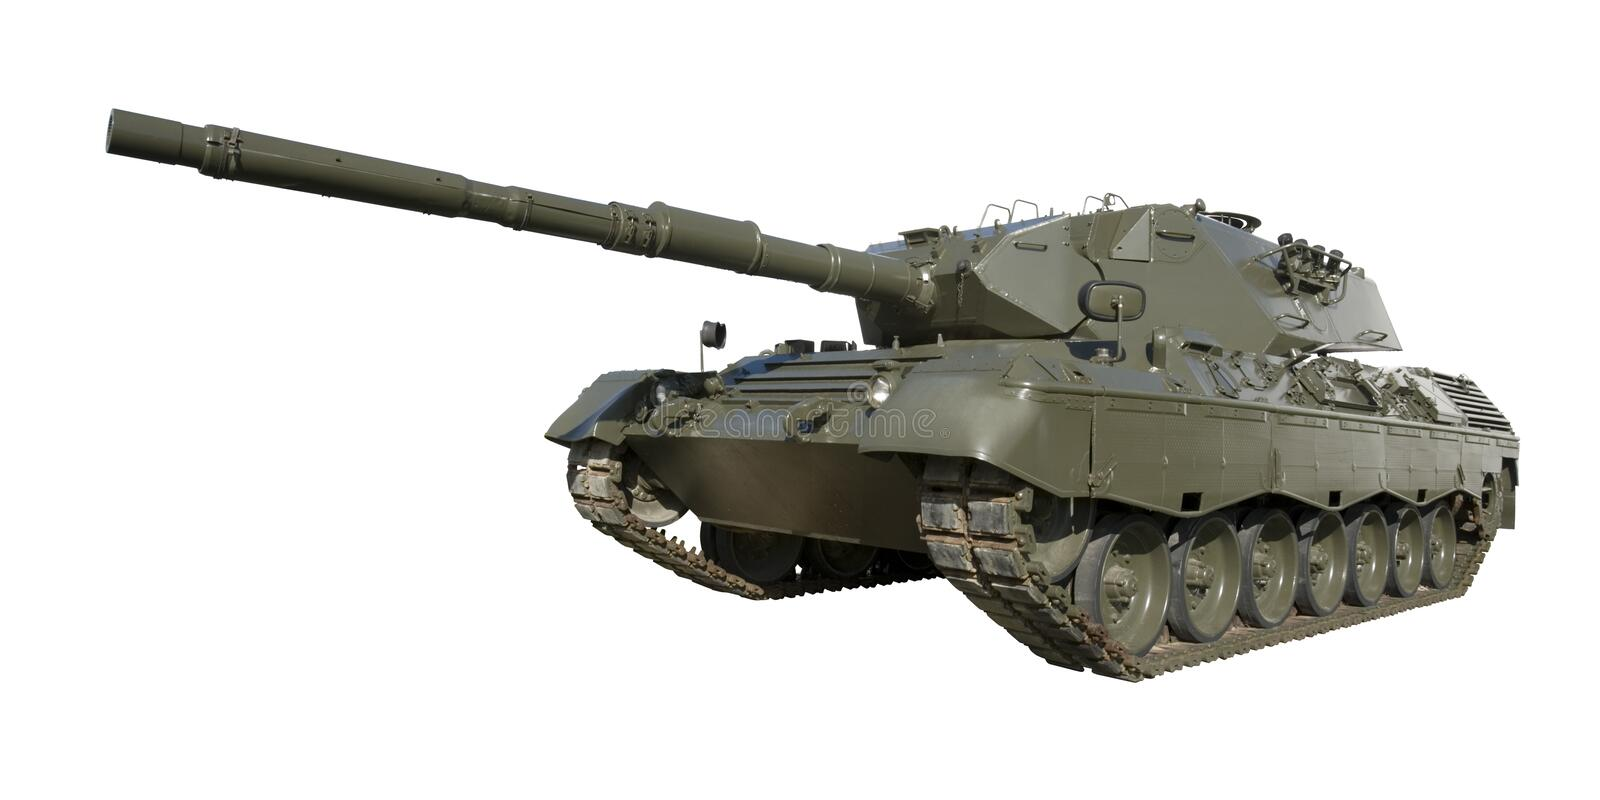 Leopard Military Tank on White. A German-built Leopard main battle tank set on a white background for easy isolation. (The JPEG file also includes a clipping stock photo